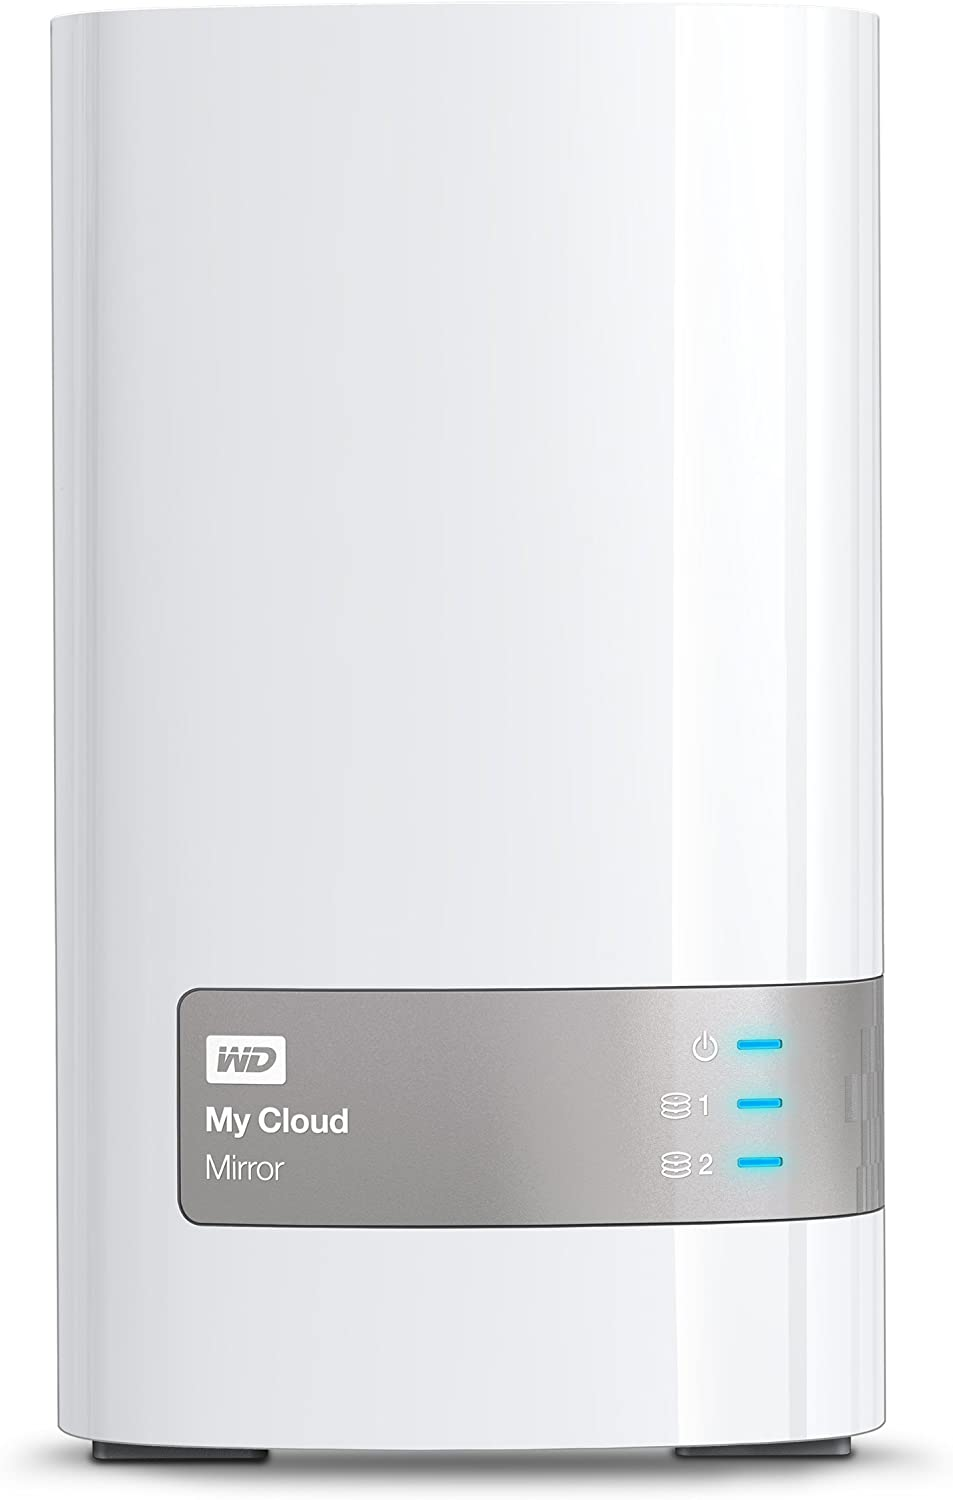 WD WDBZVM0040JWT-NESN 4TB My Cloud Mirror Personal Network Attached Storage